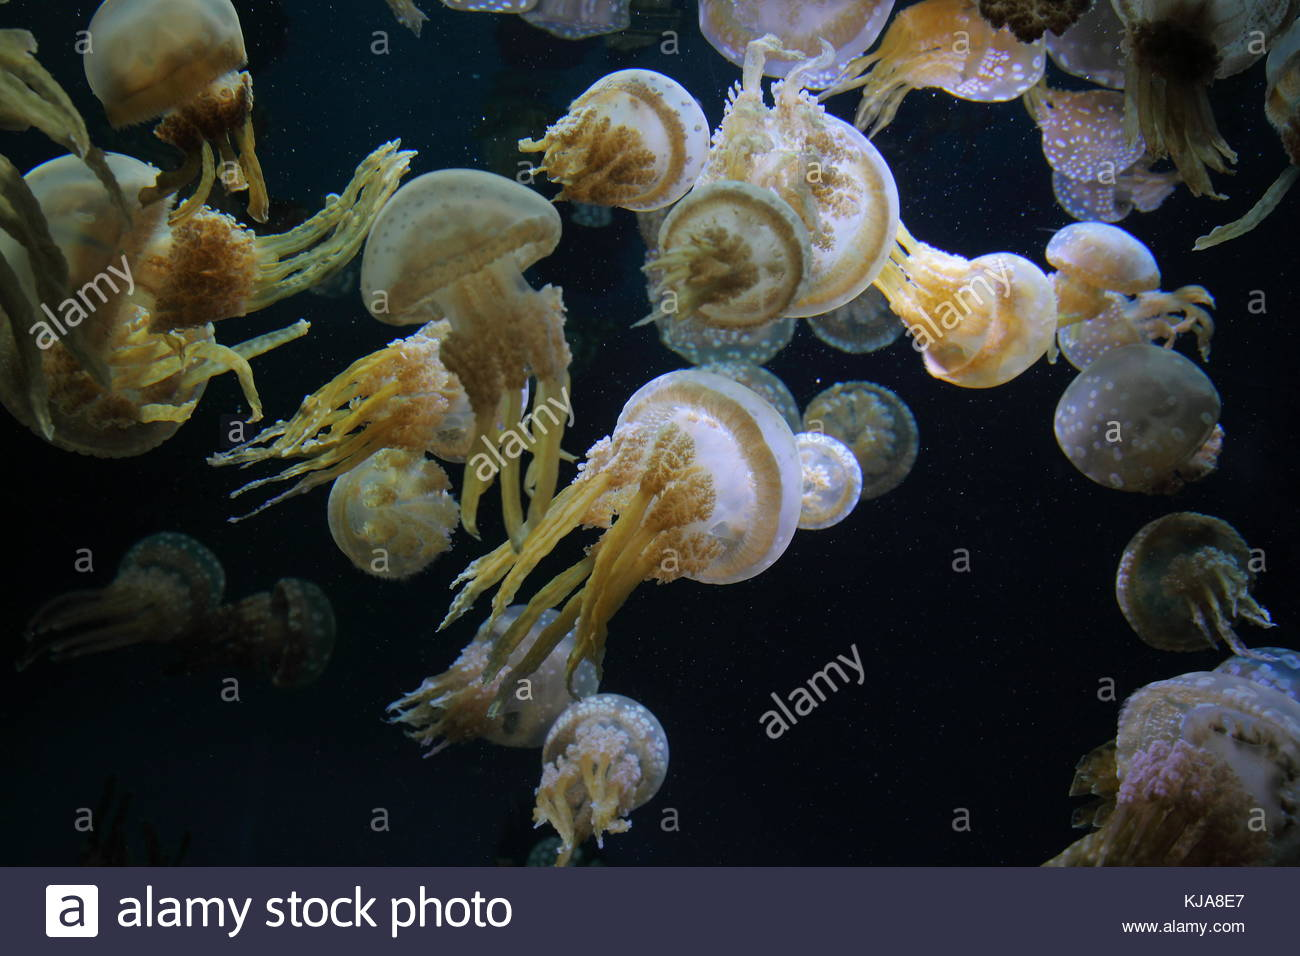 White spotted jelly Photo Stock